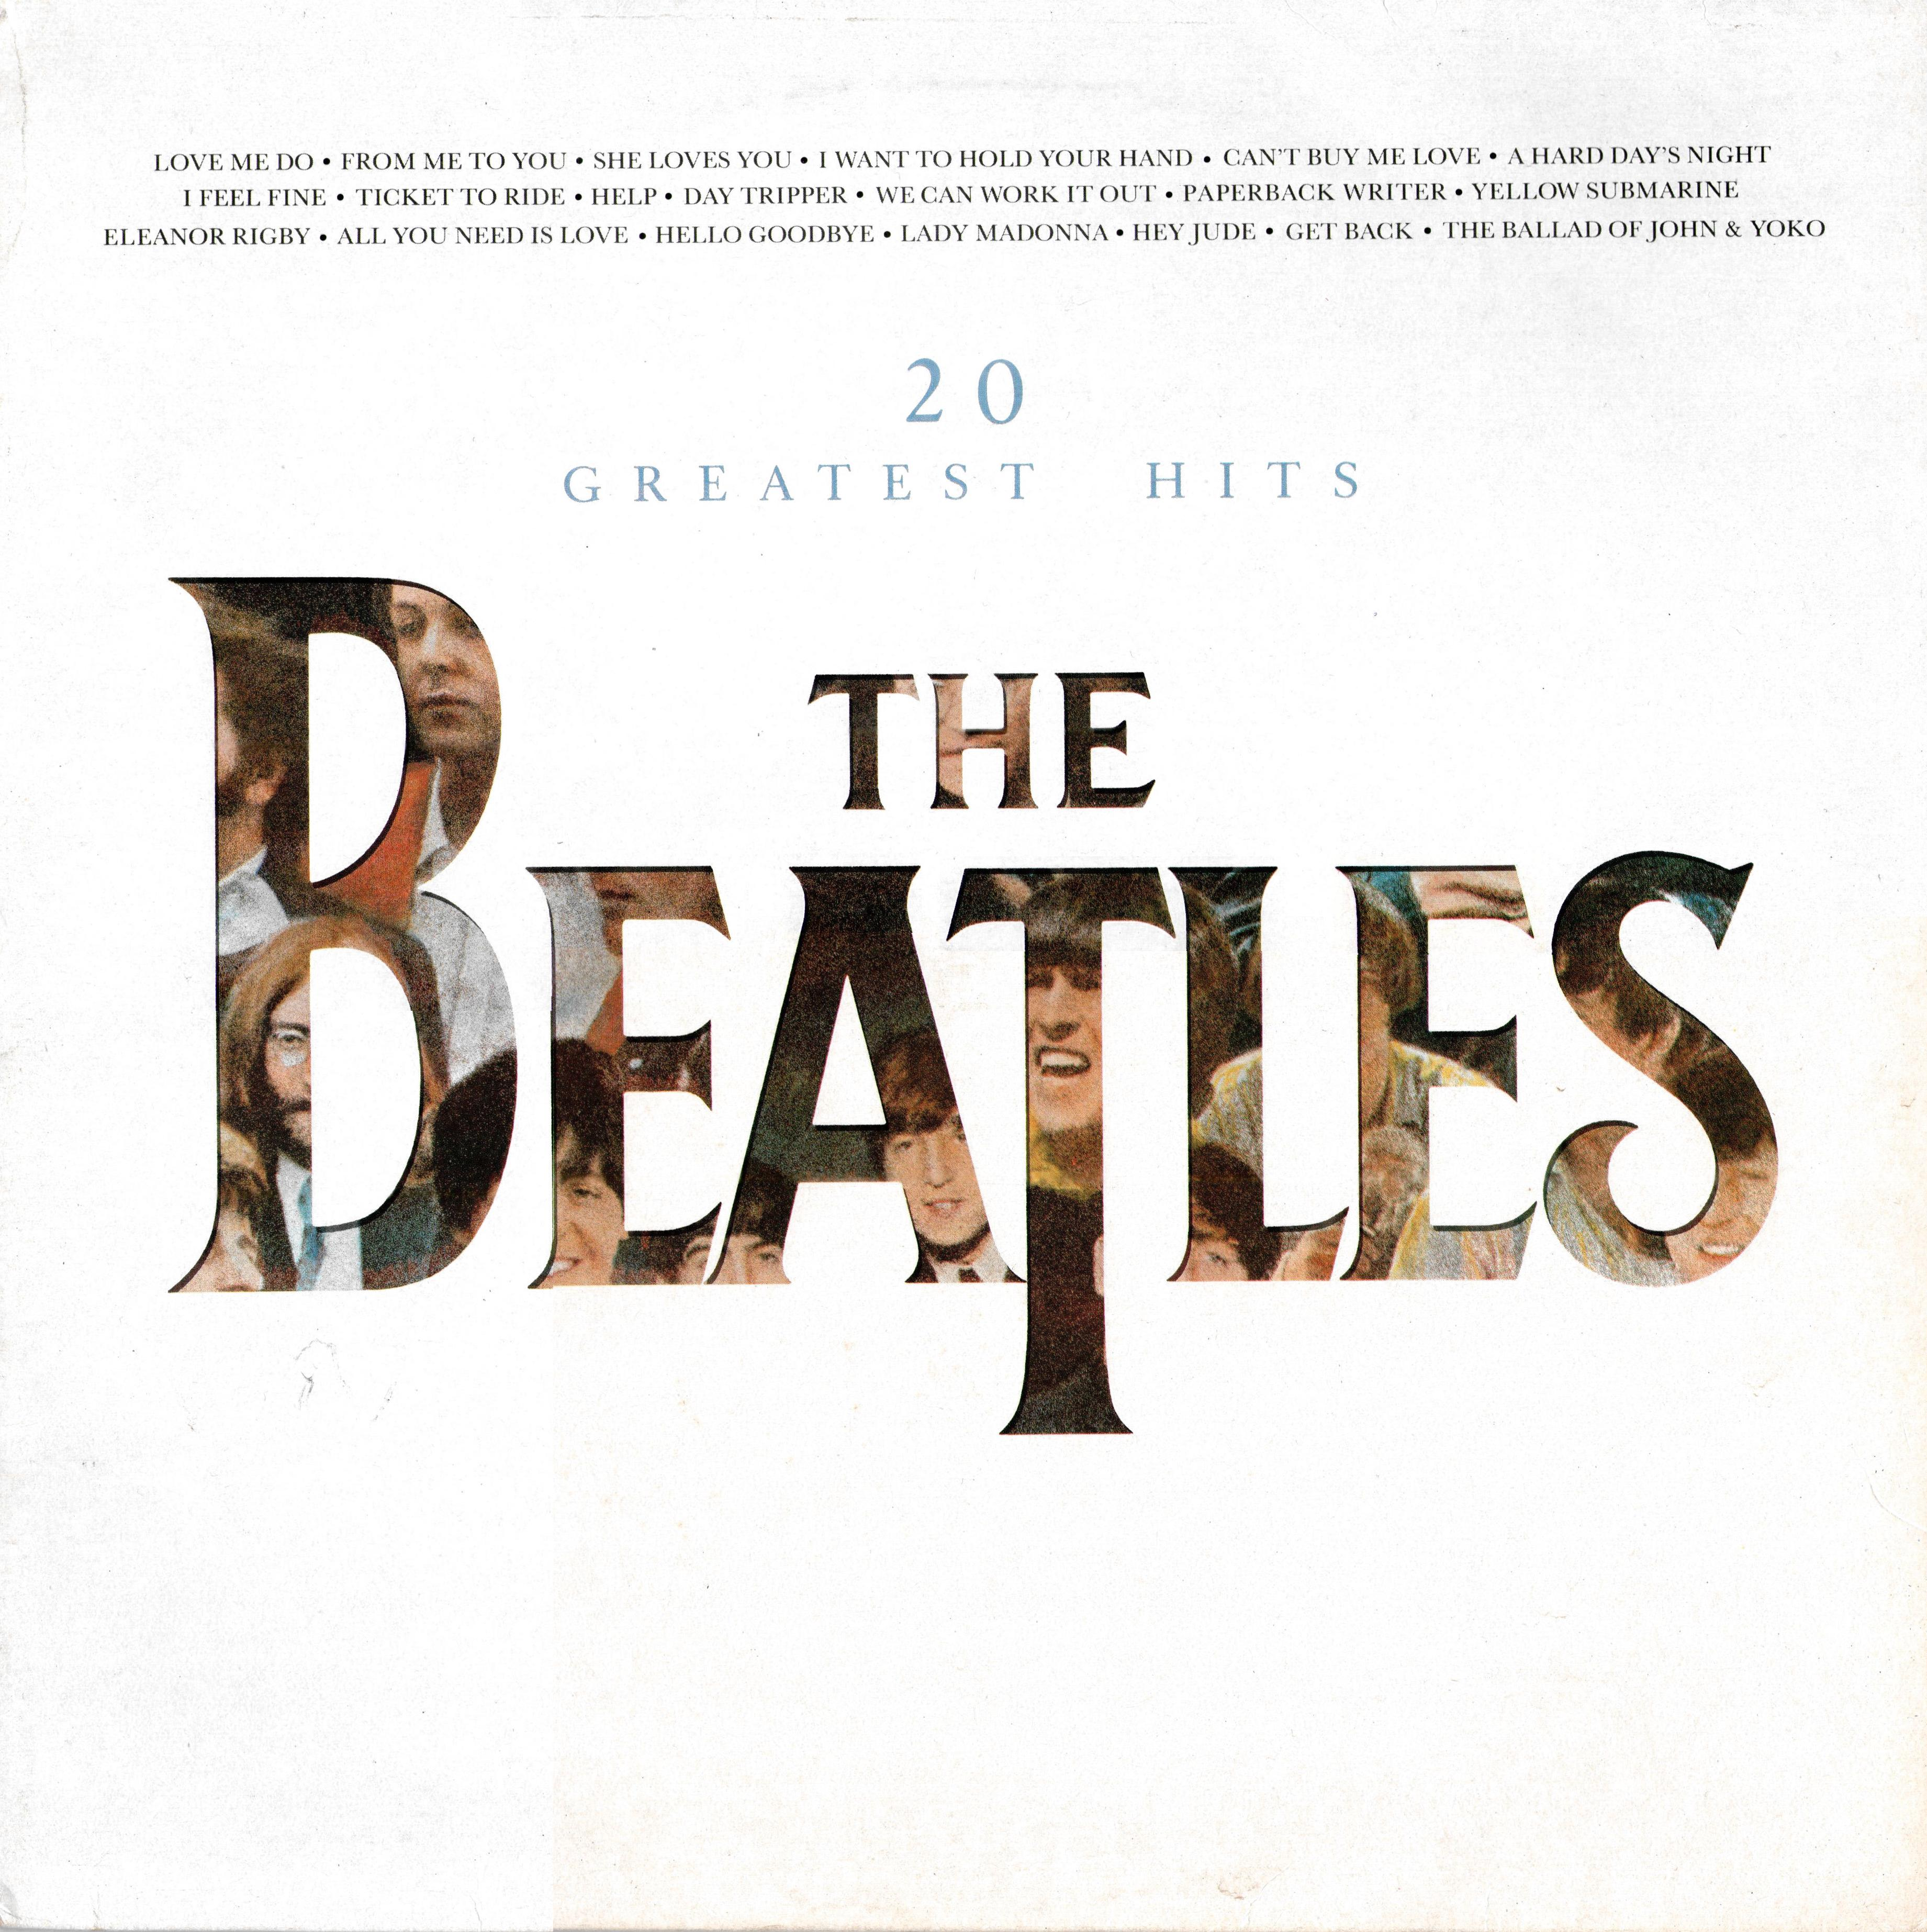 the beatles collection 20 greatest hits parlophone pctc. Black Bedroom Furniture Sets. Home Design Ideas